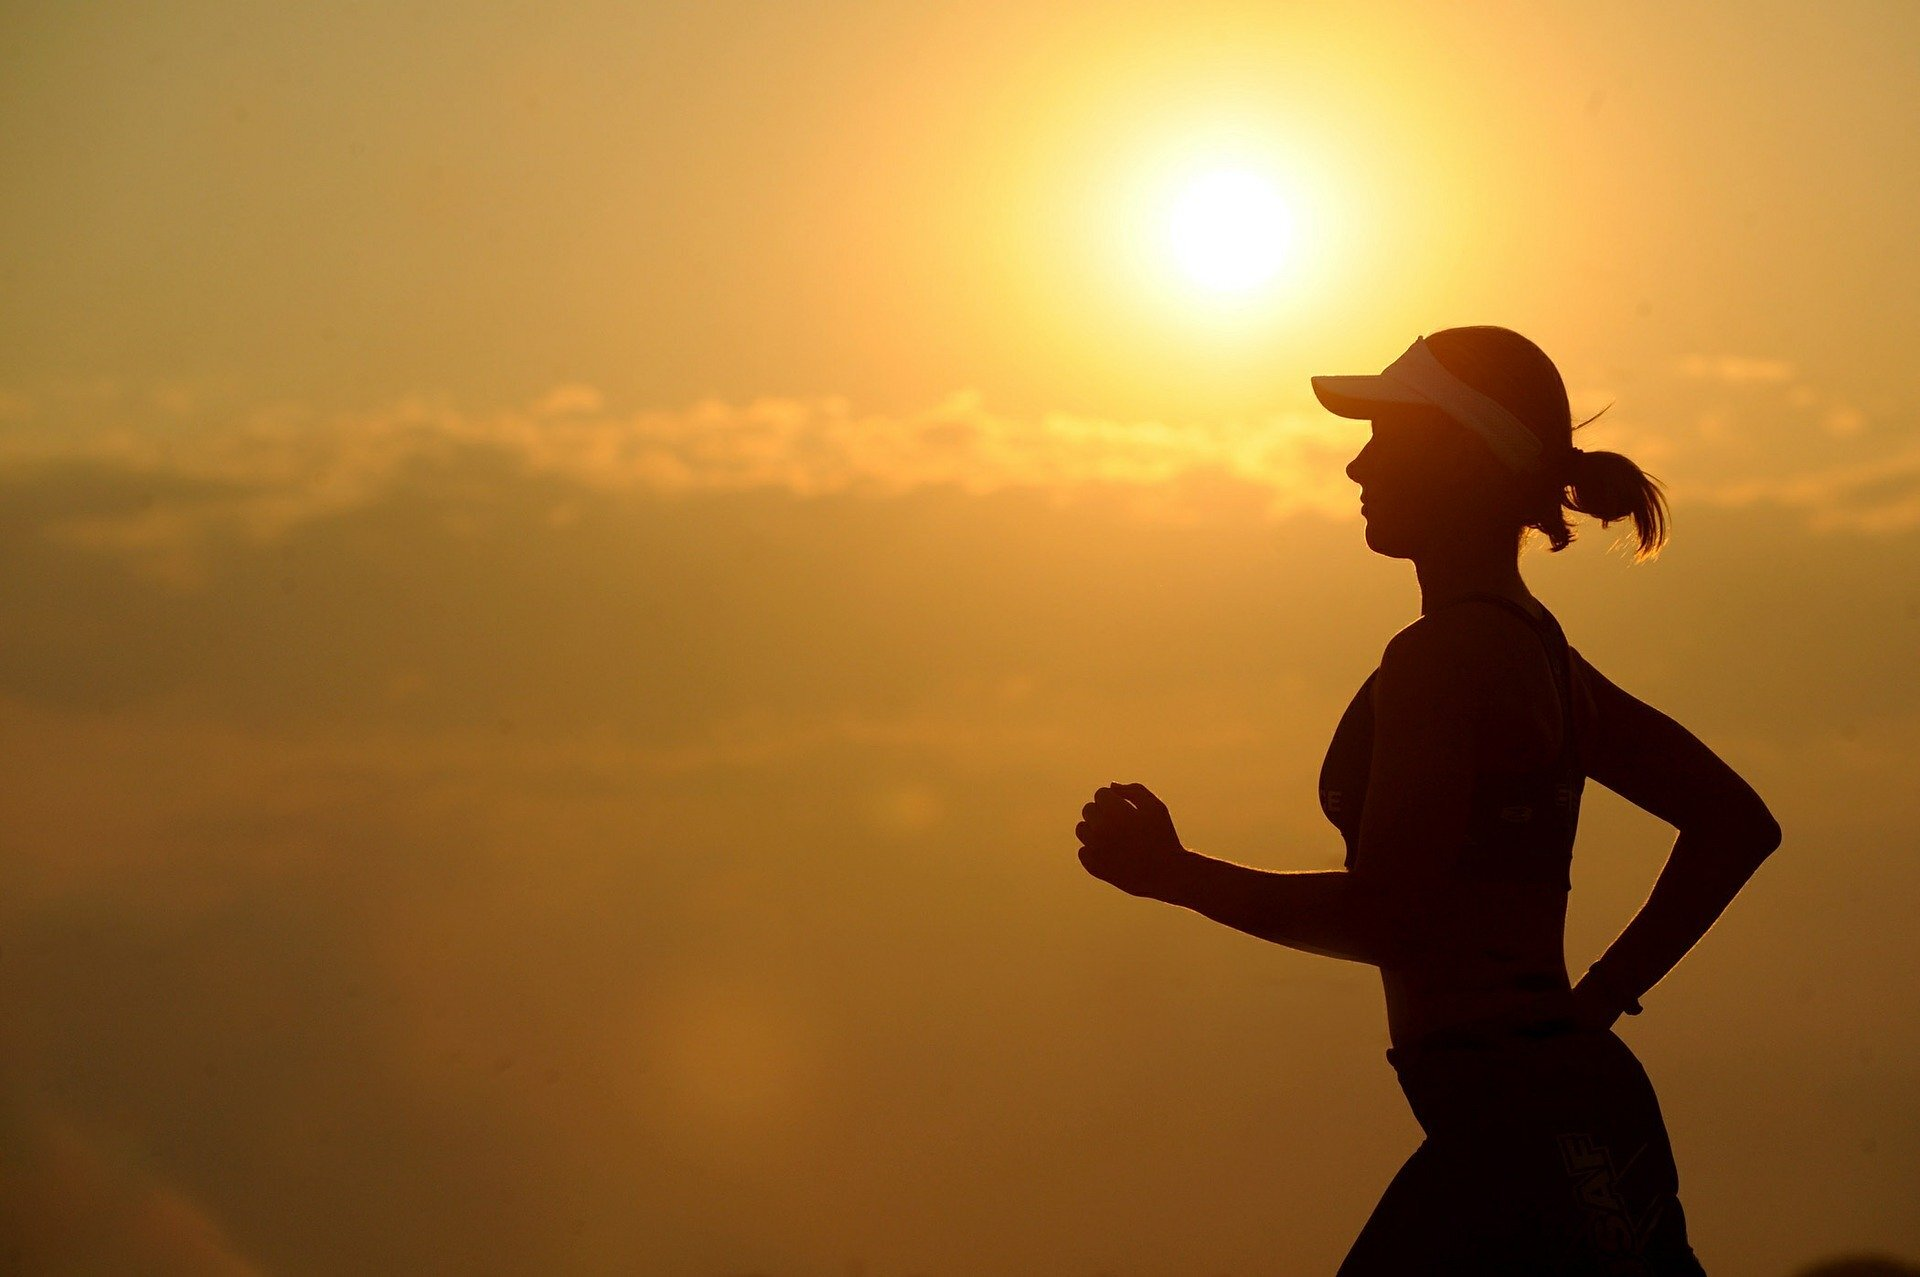 Study Identifies Exercise As Key To Halting Progress From